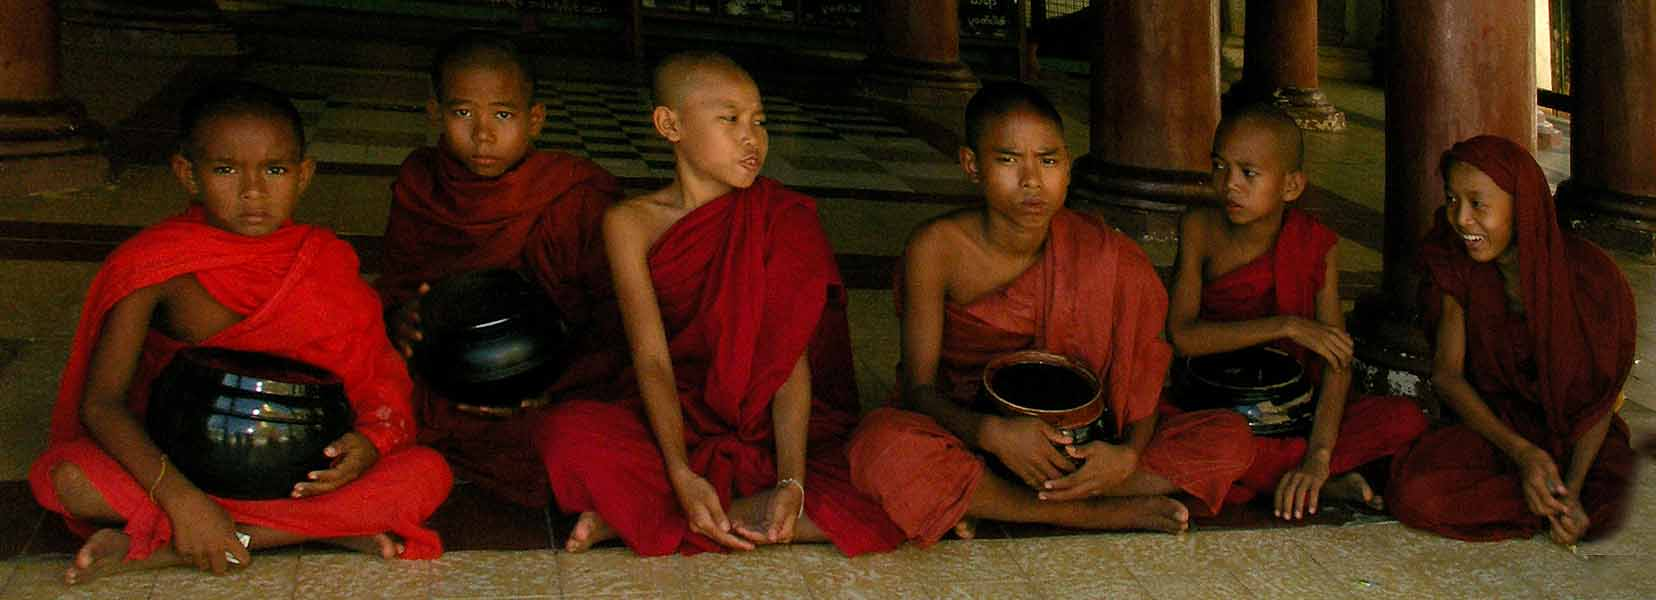 mini monks with their beggar bowls in the recesses downs jim